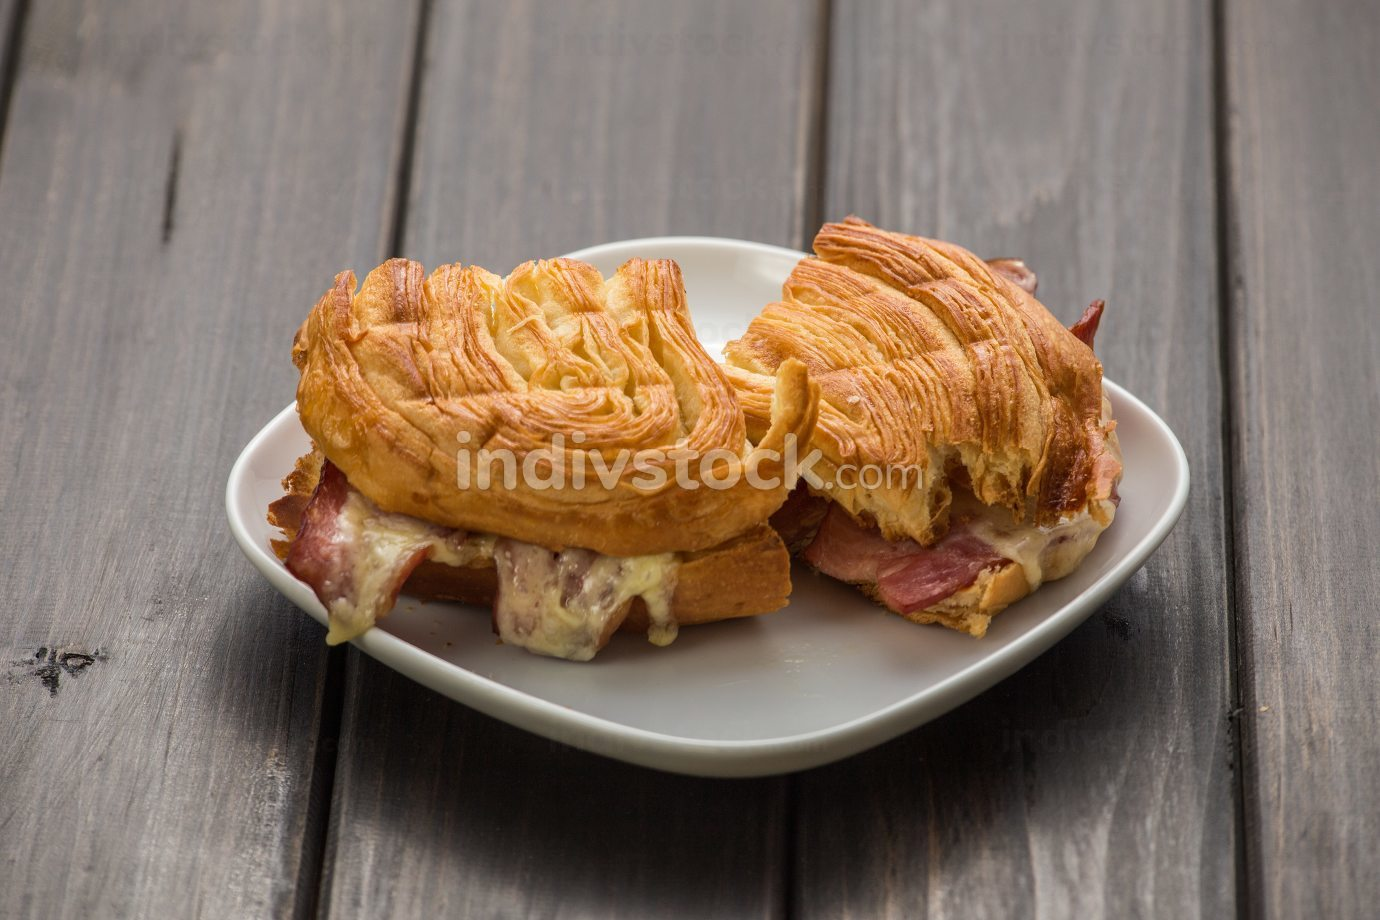 Sandwiches with meet, vegetables